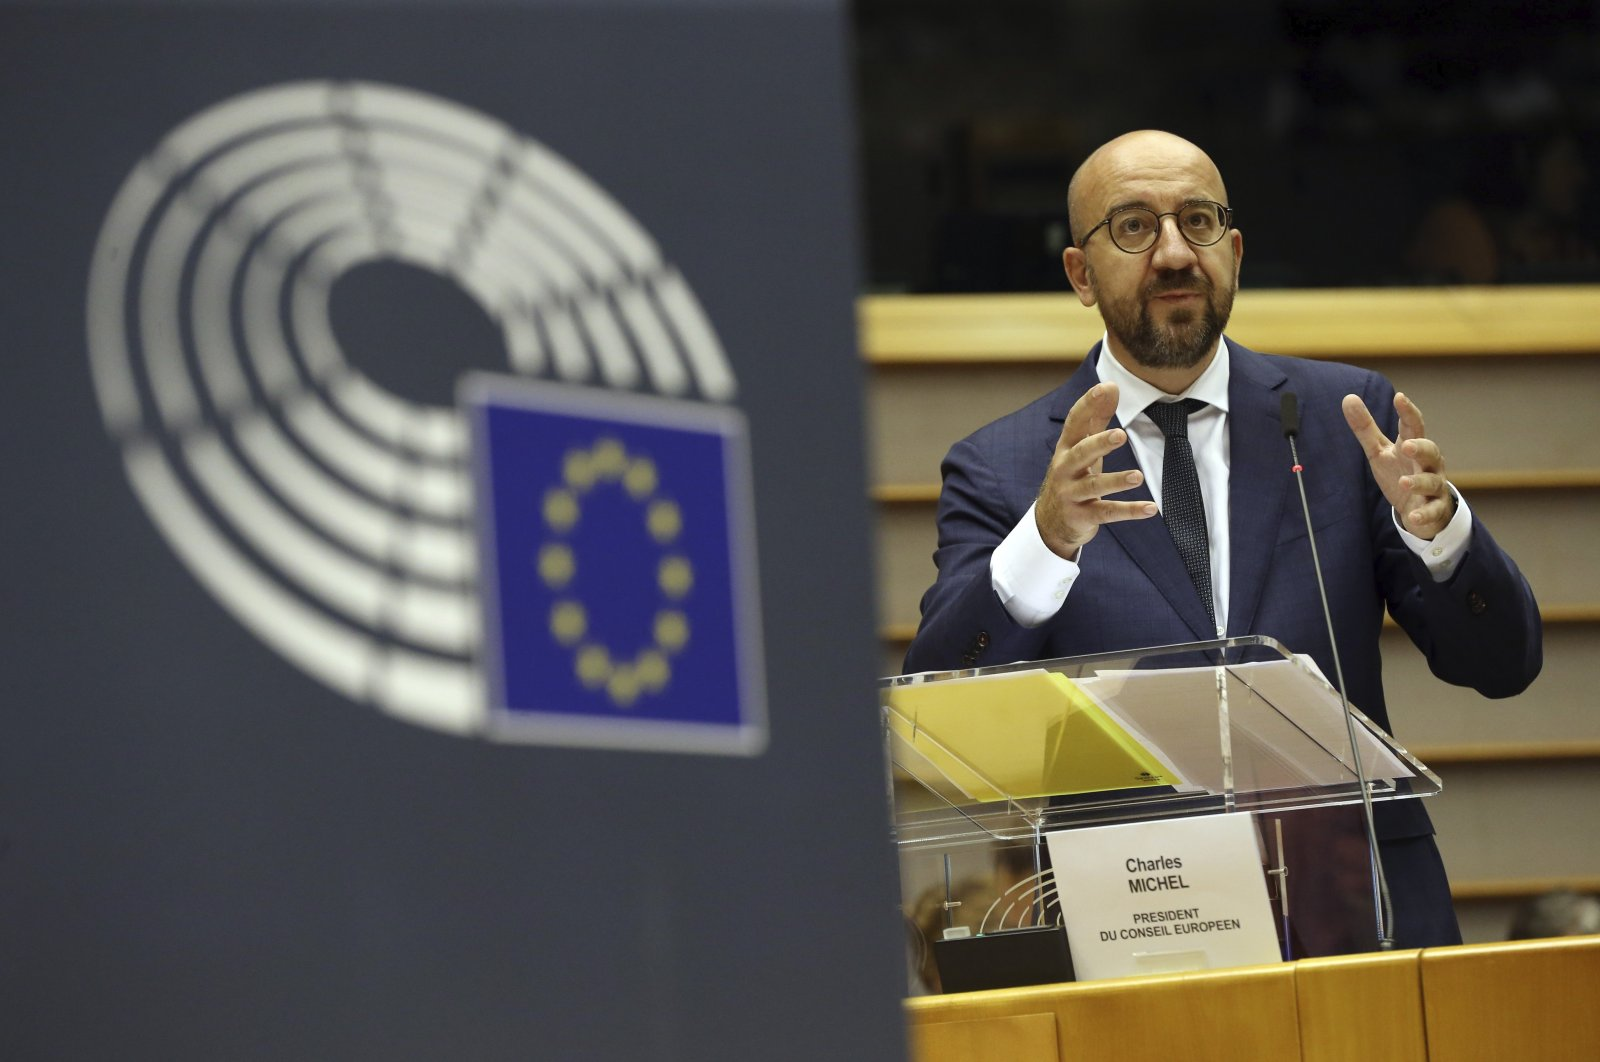 European Council President Charles Michel addresses European lawmakers at the European Parliament in Brussels, July 23, 2020. (AP Photo)